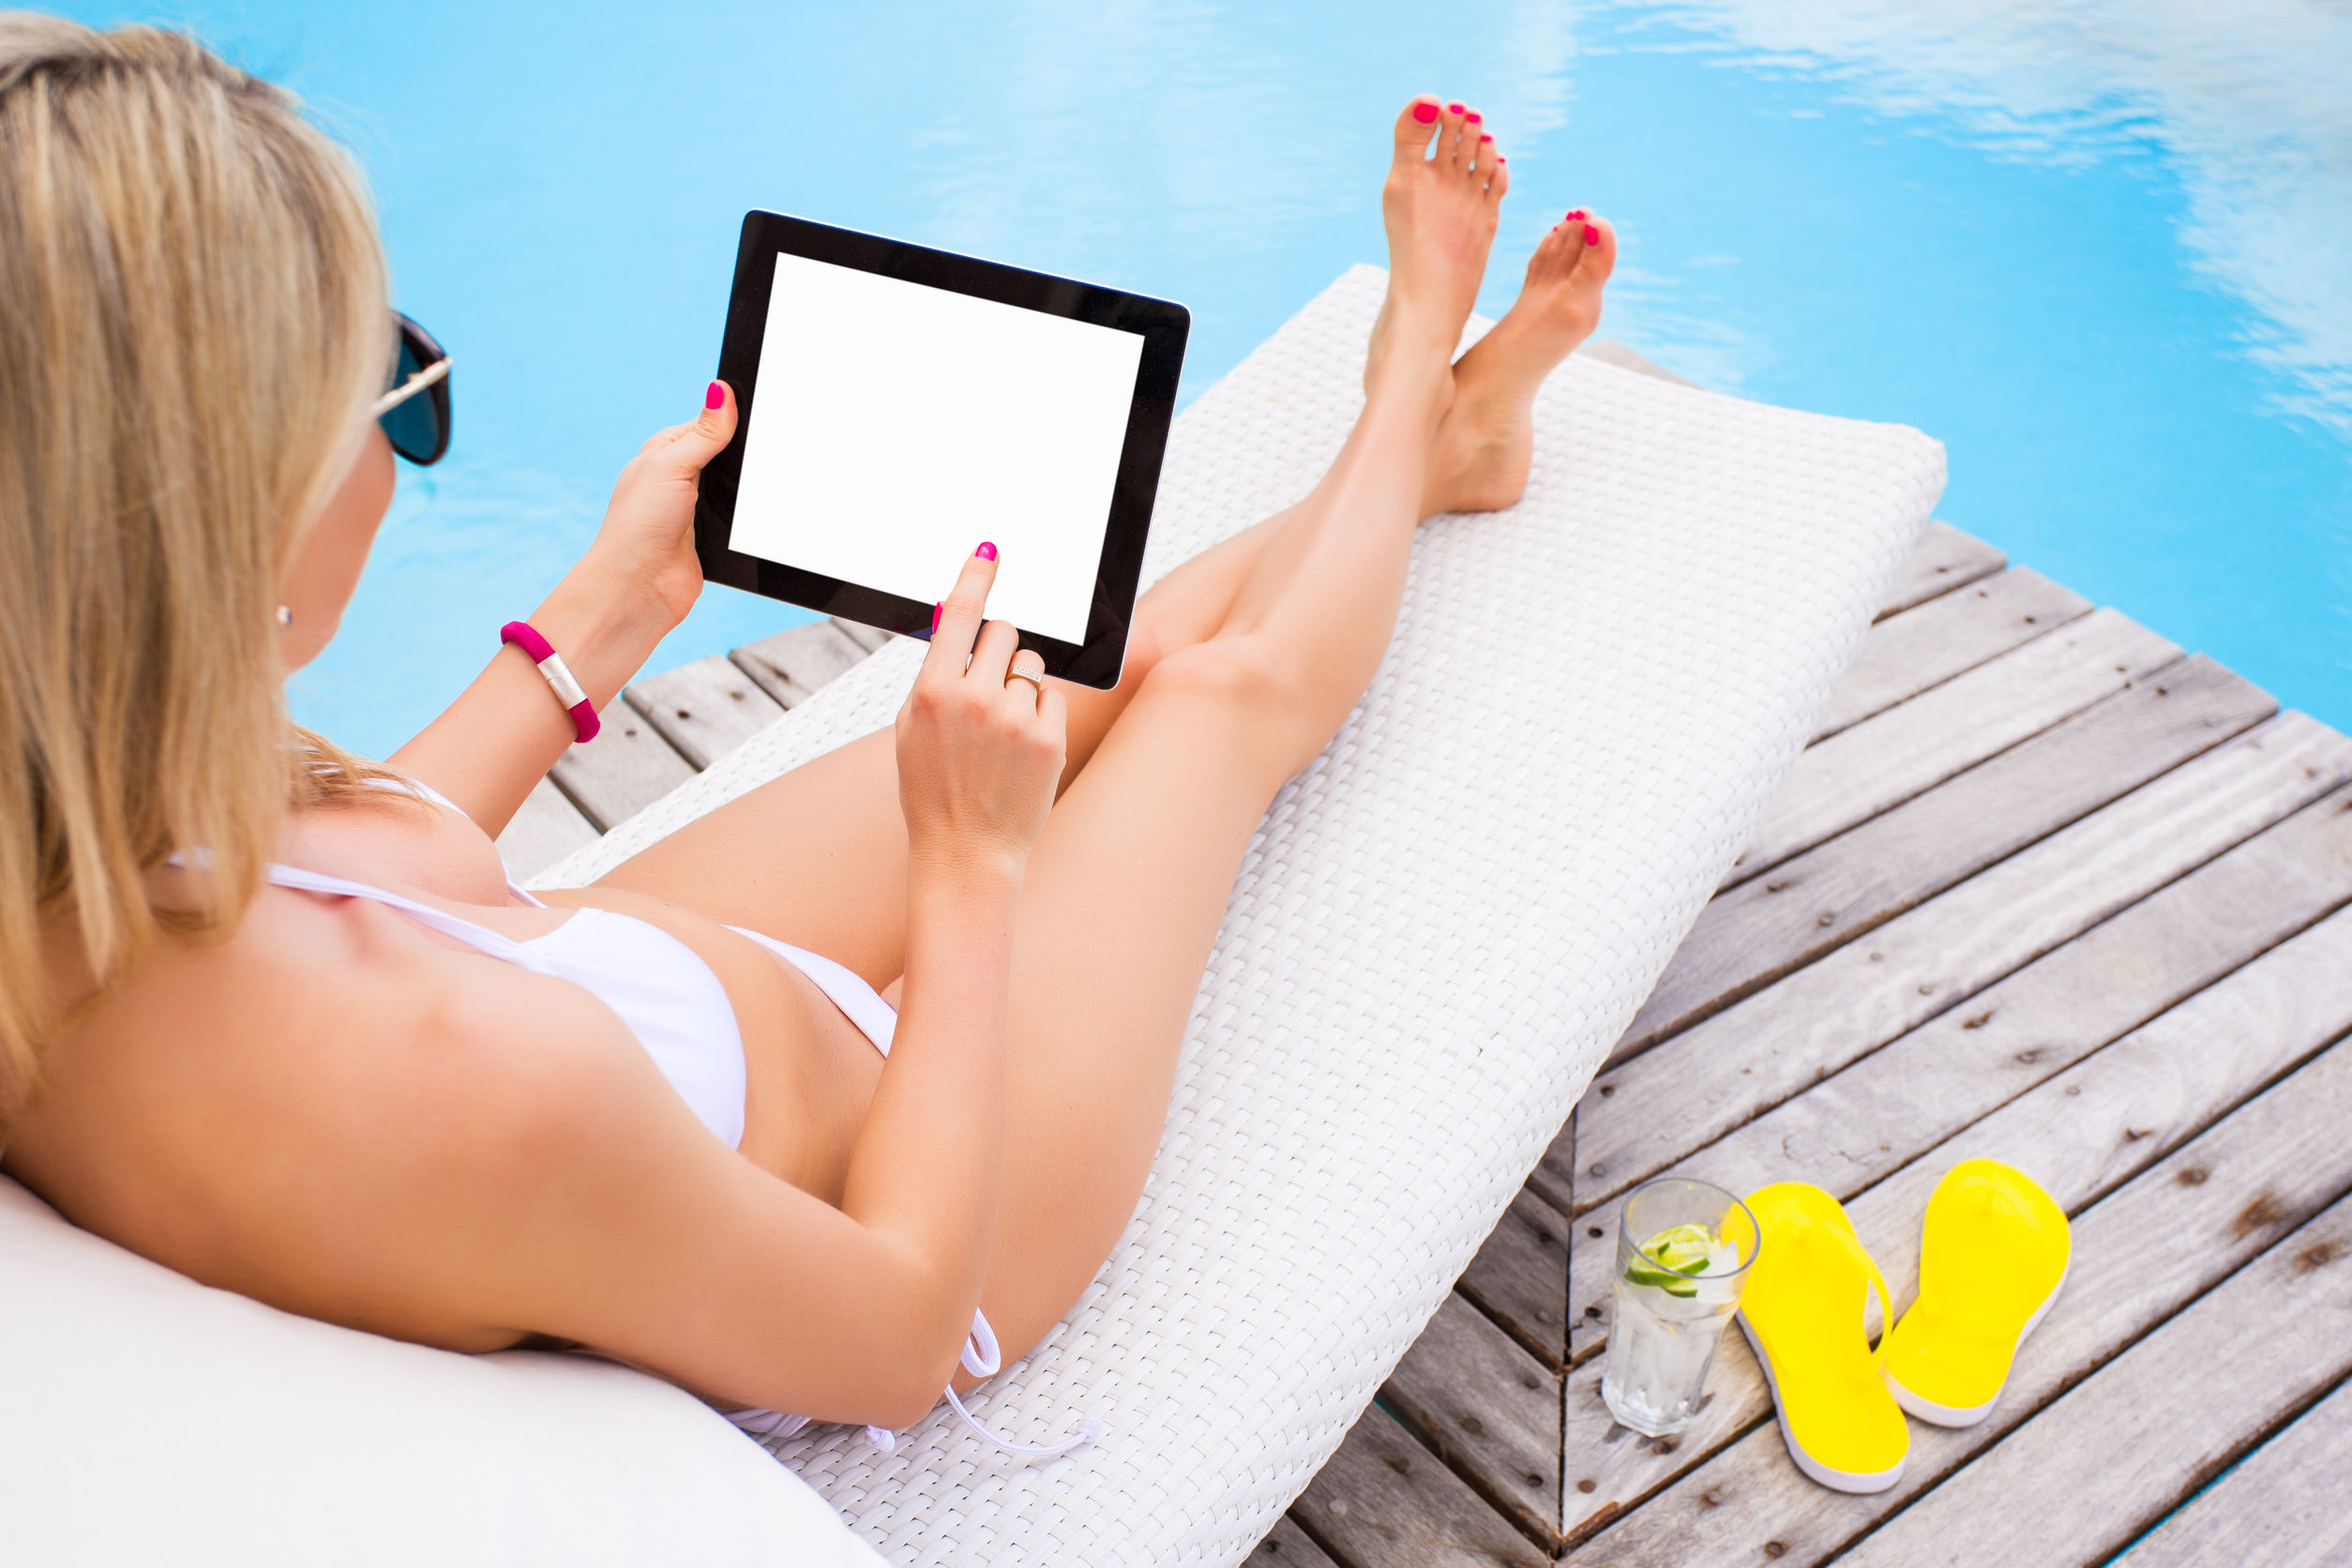 38874761 - woman using tablet computer while sunbathing in chair by the pool